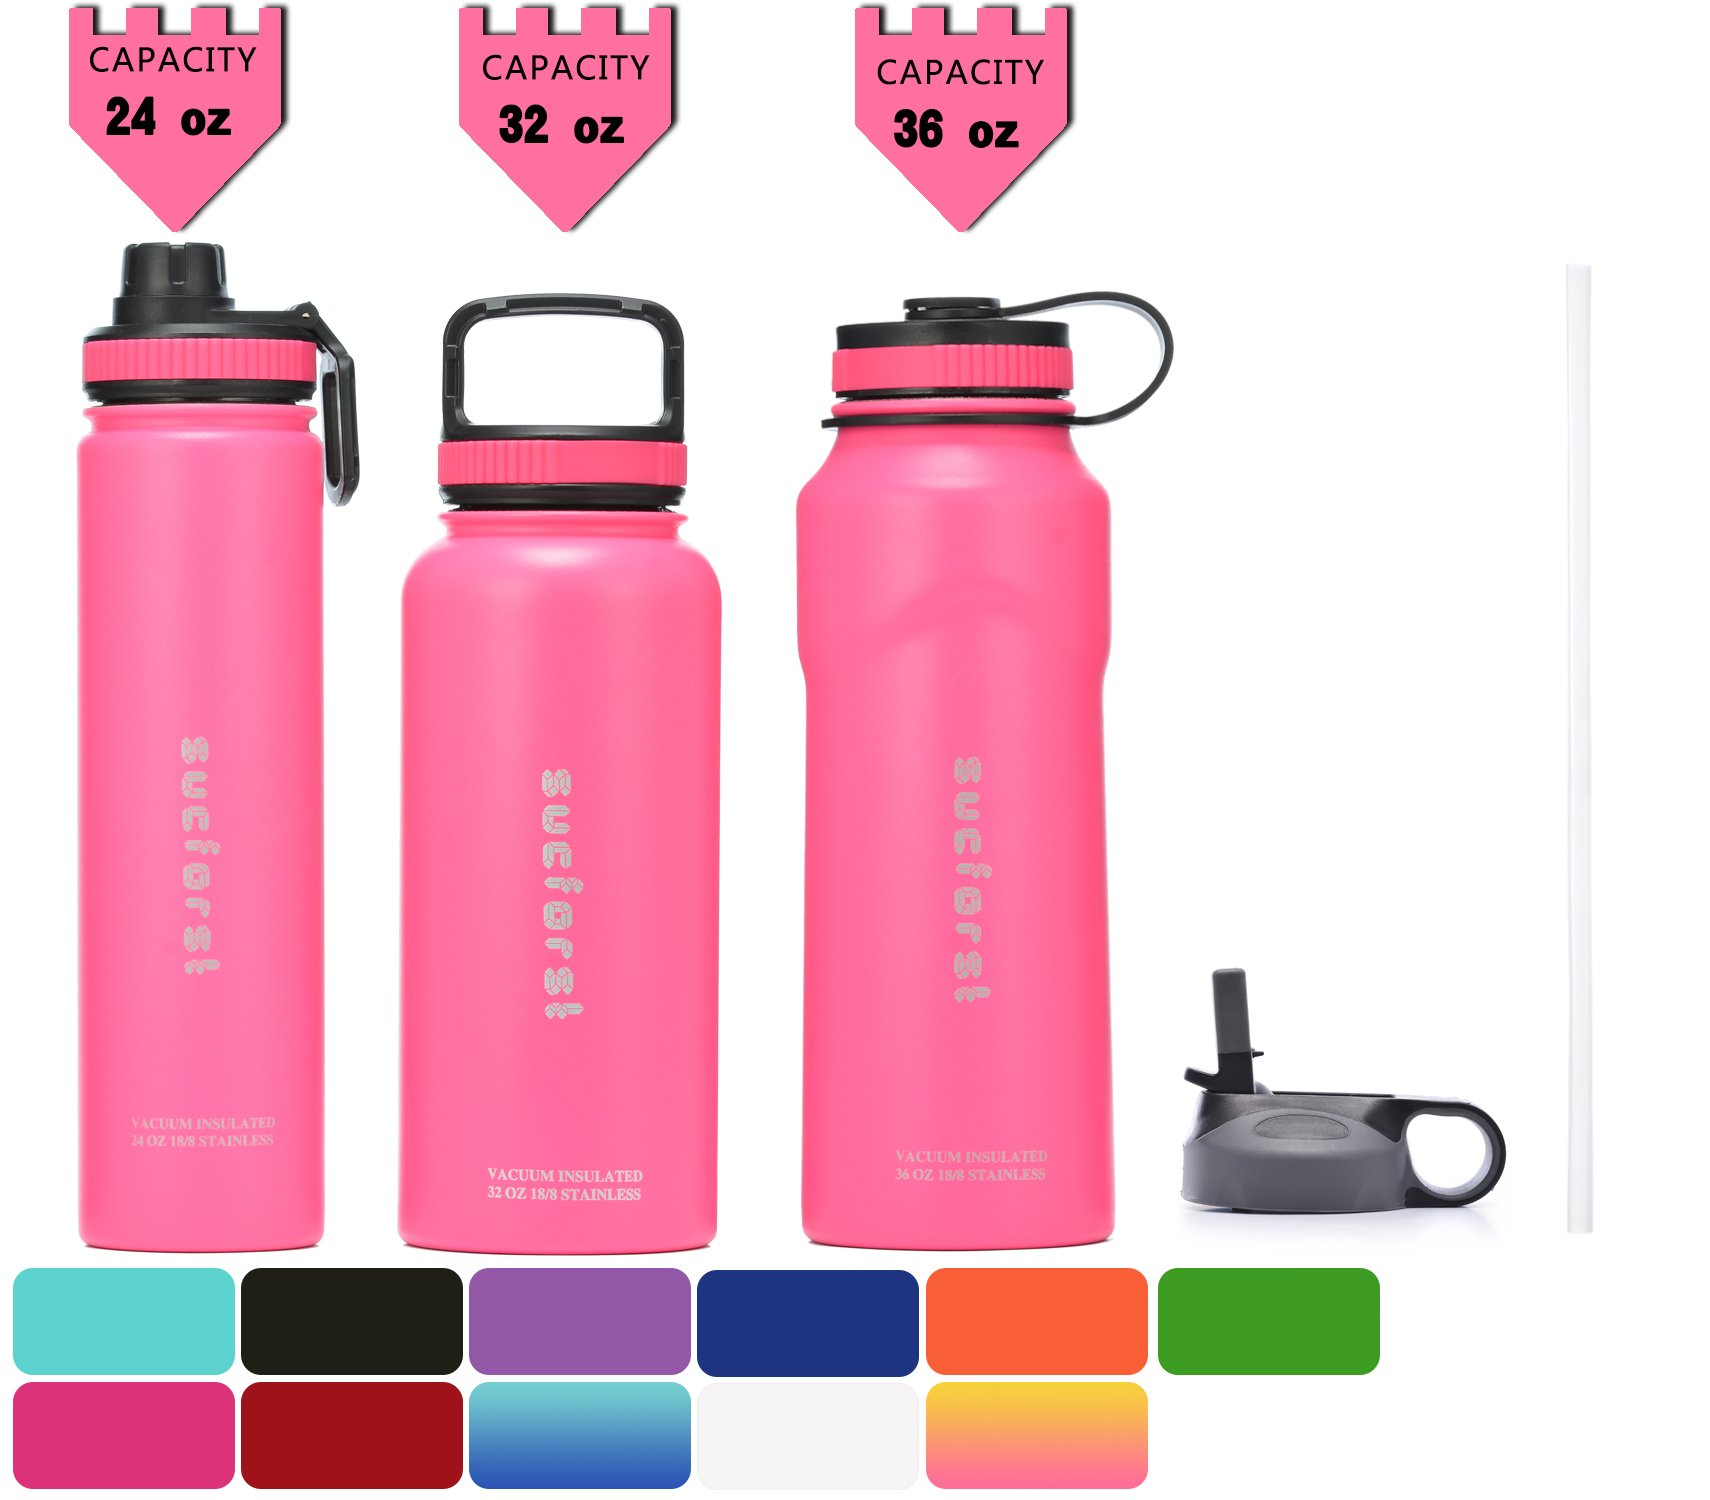 SUCFORST Water Bottle +2 Extra Lids- Vacuum Insulated Stainless Steel Wide Mouth Travel Mug - Powder Coated Double-Walled Flask, 24 oz (Pink) by SUCFORST